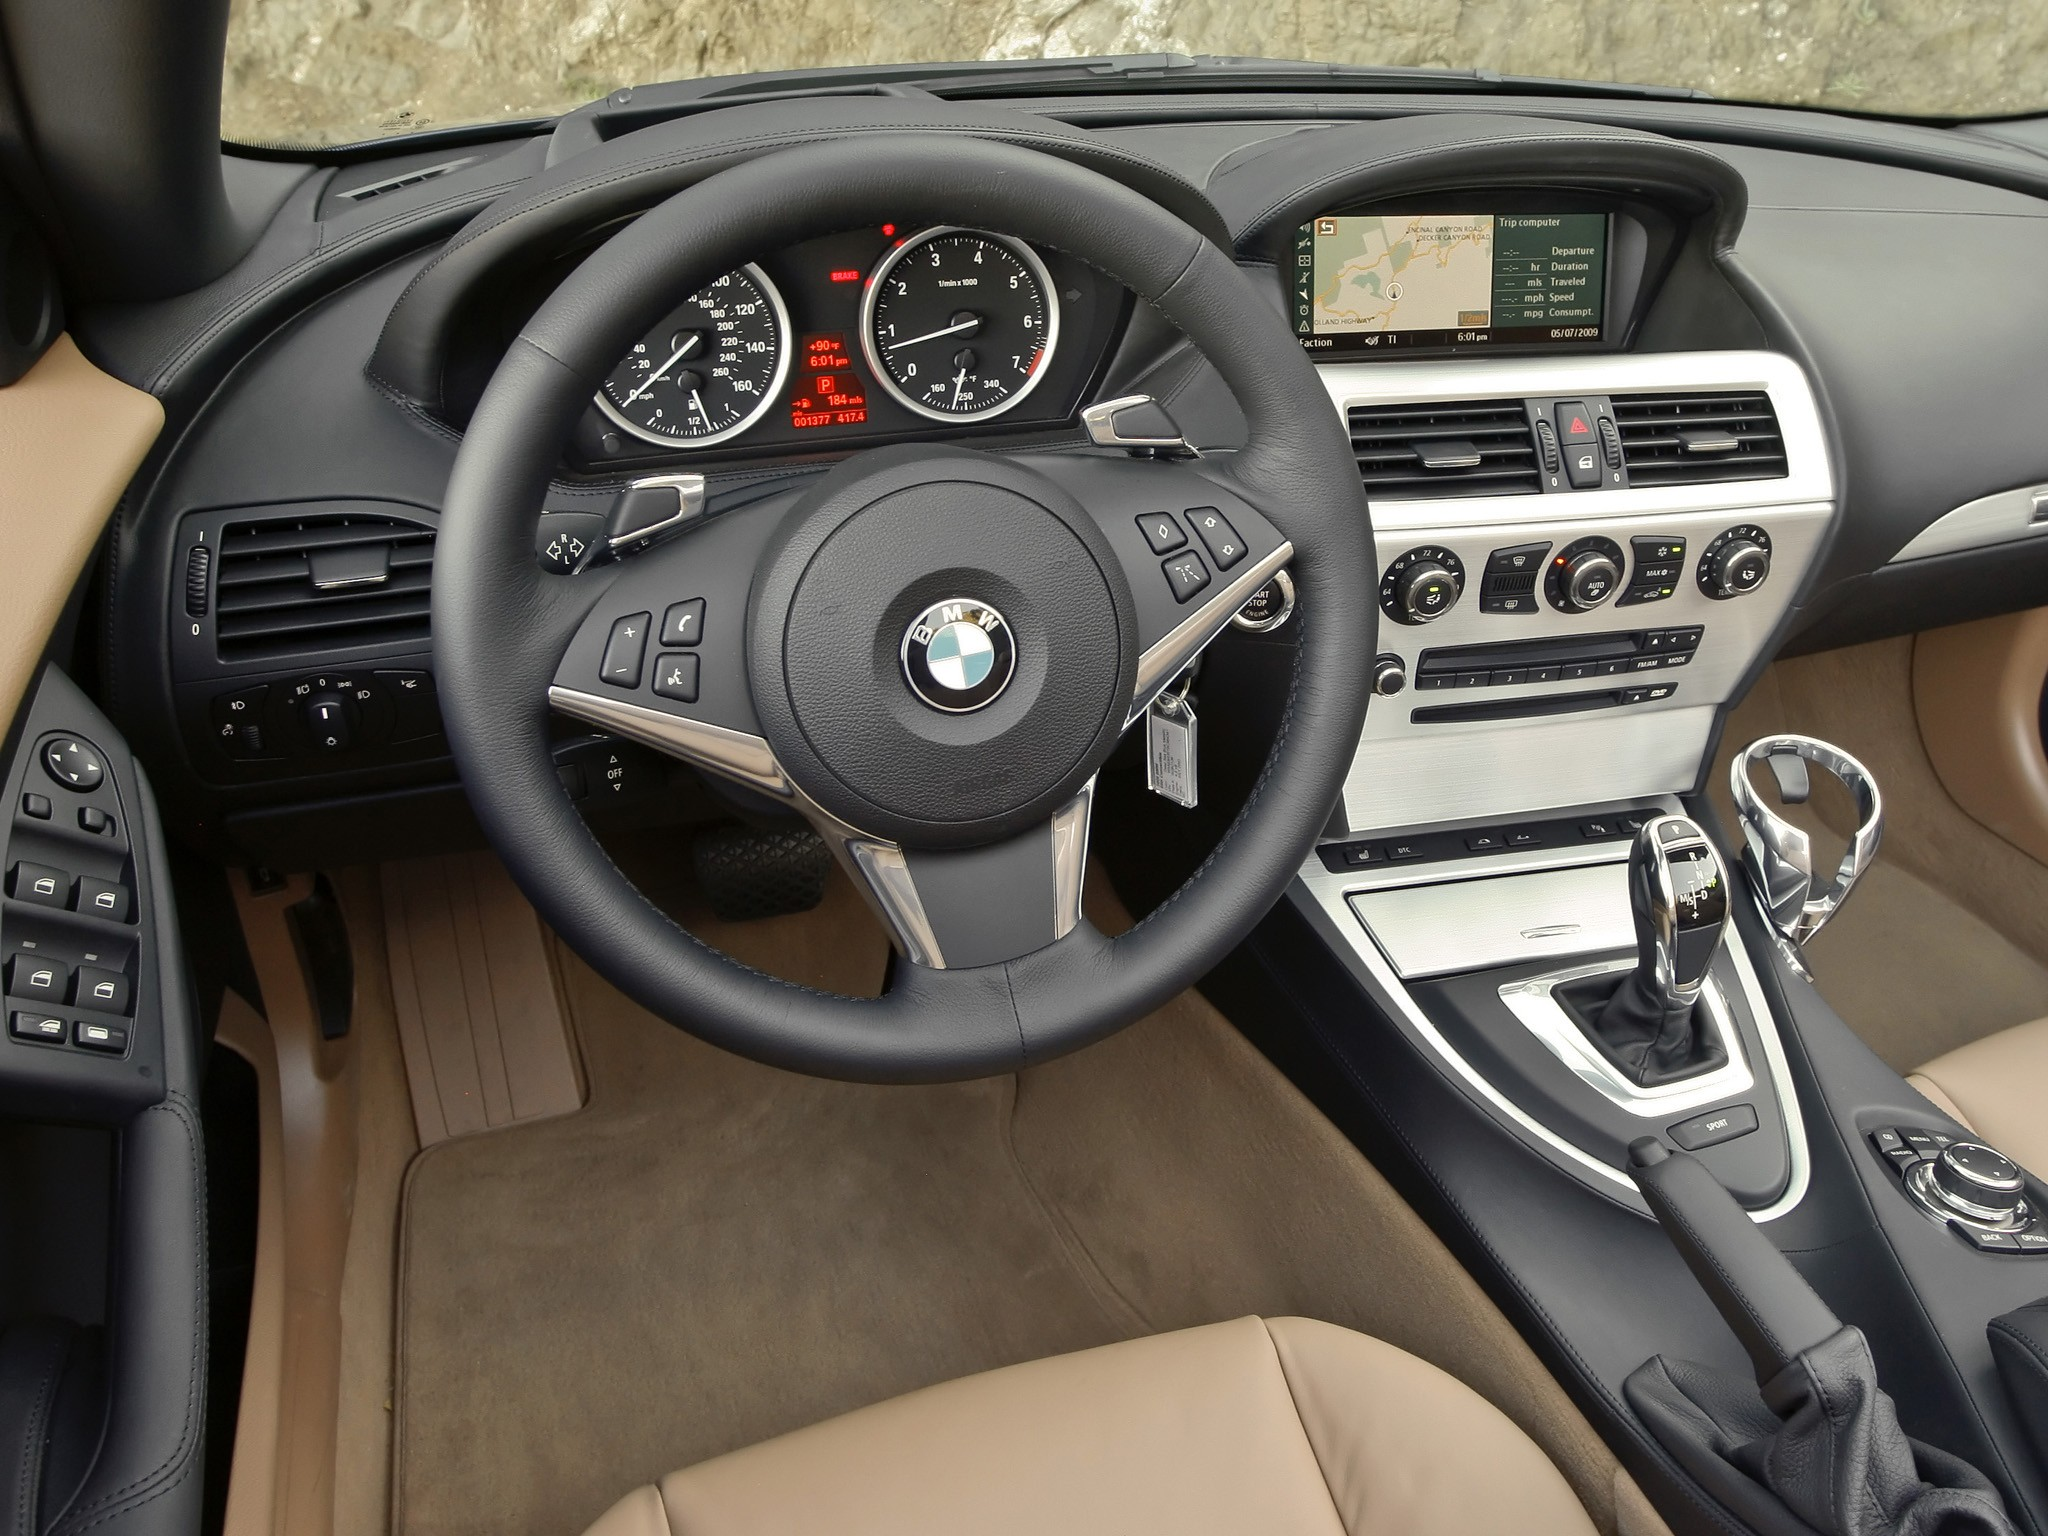 2010 BMW 650I >> BMW 6 Series Coupe (E63) - 2007, 2008, 2009, 2010, 2011 - autoevolution